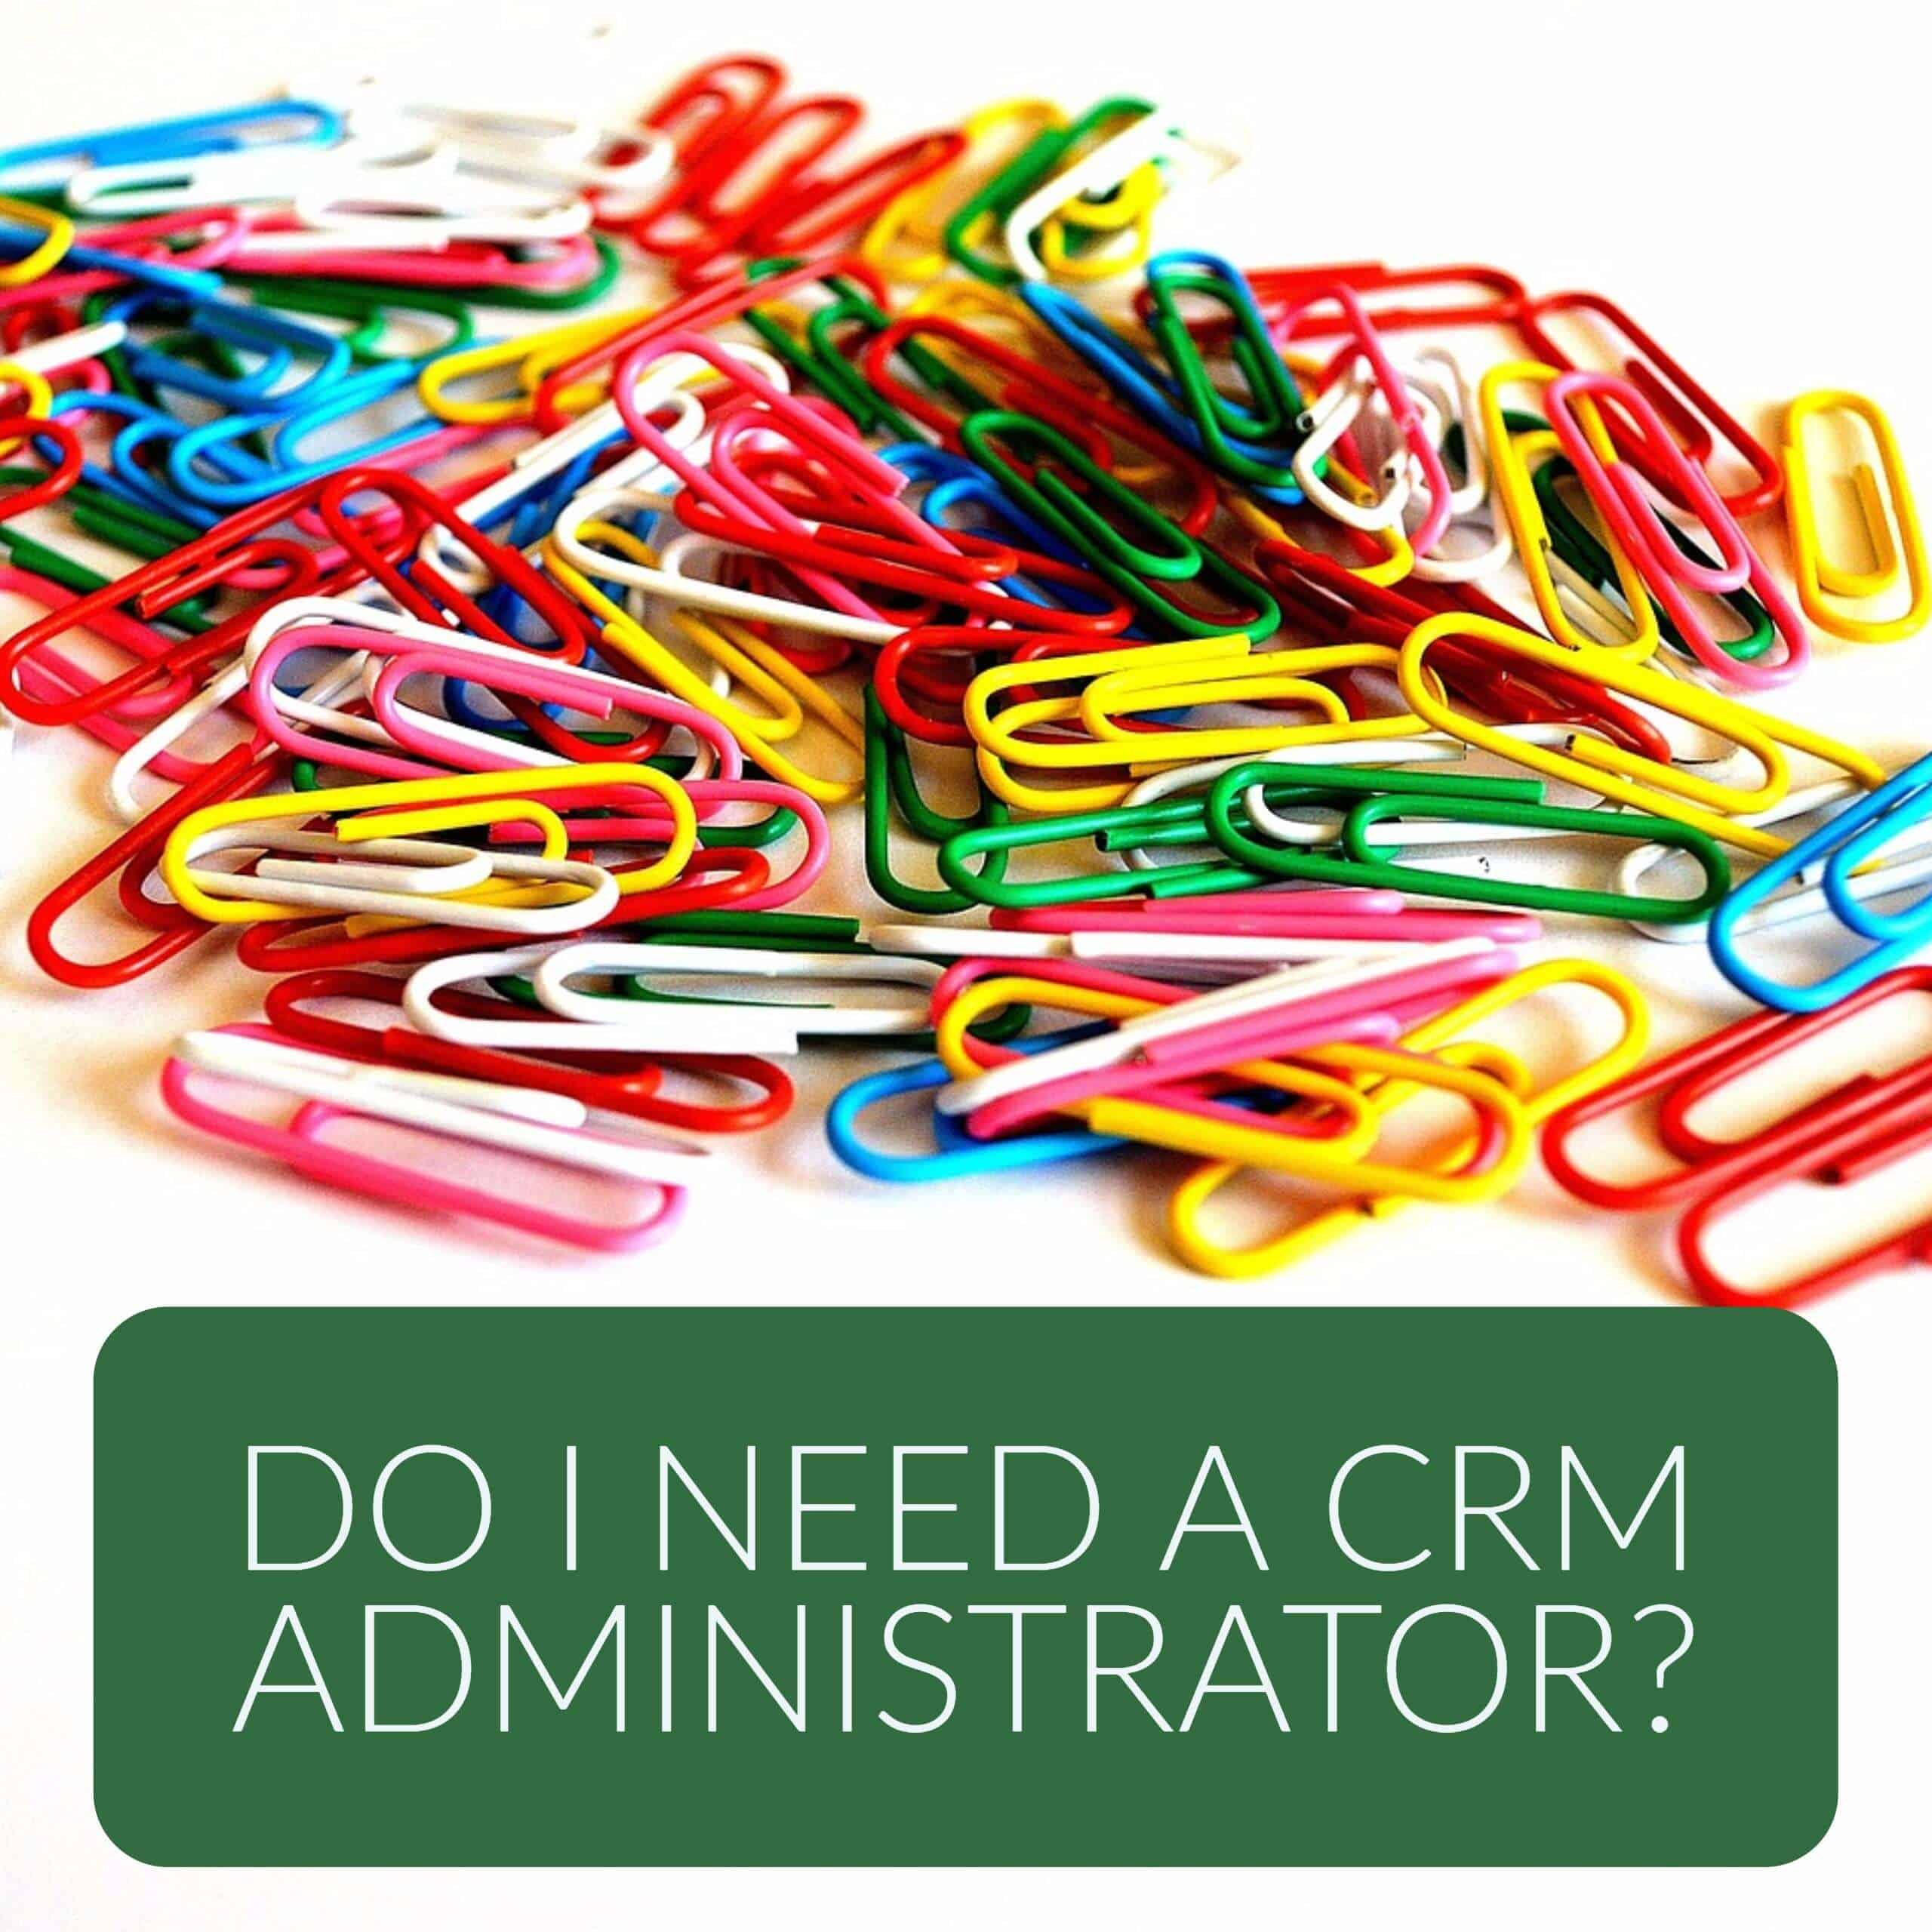 Does your company need a Dynamics 365 CRM administrator?